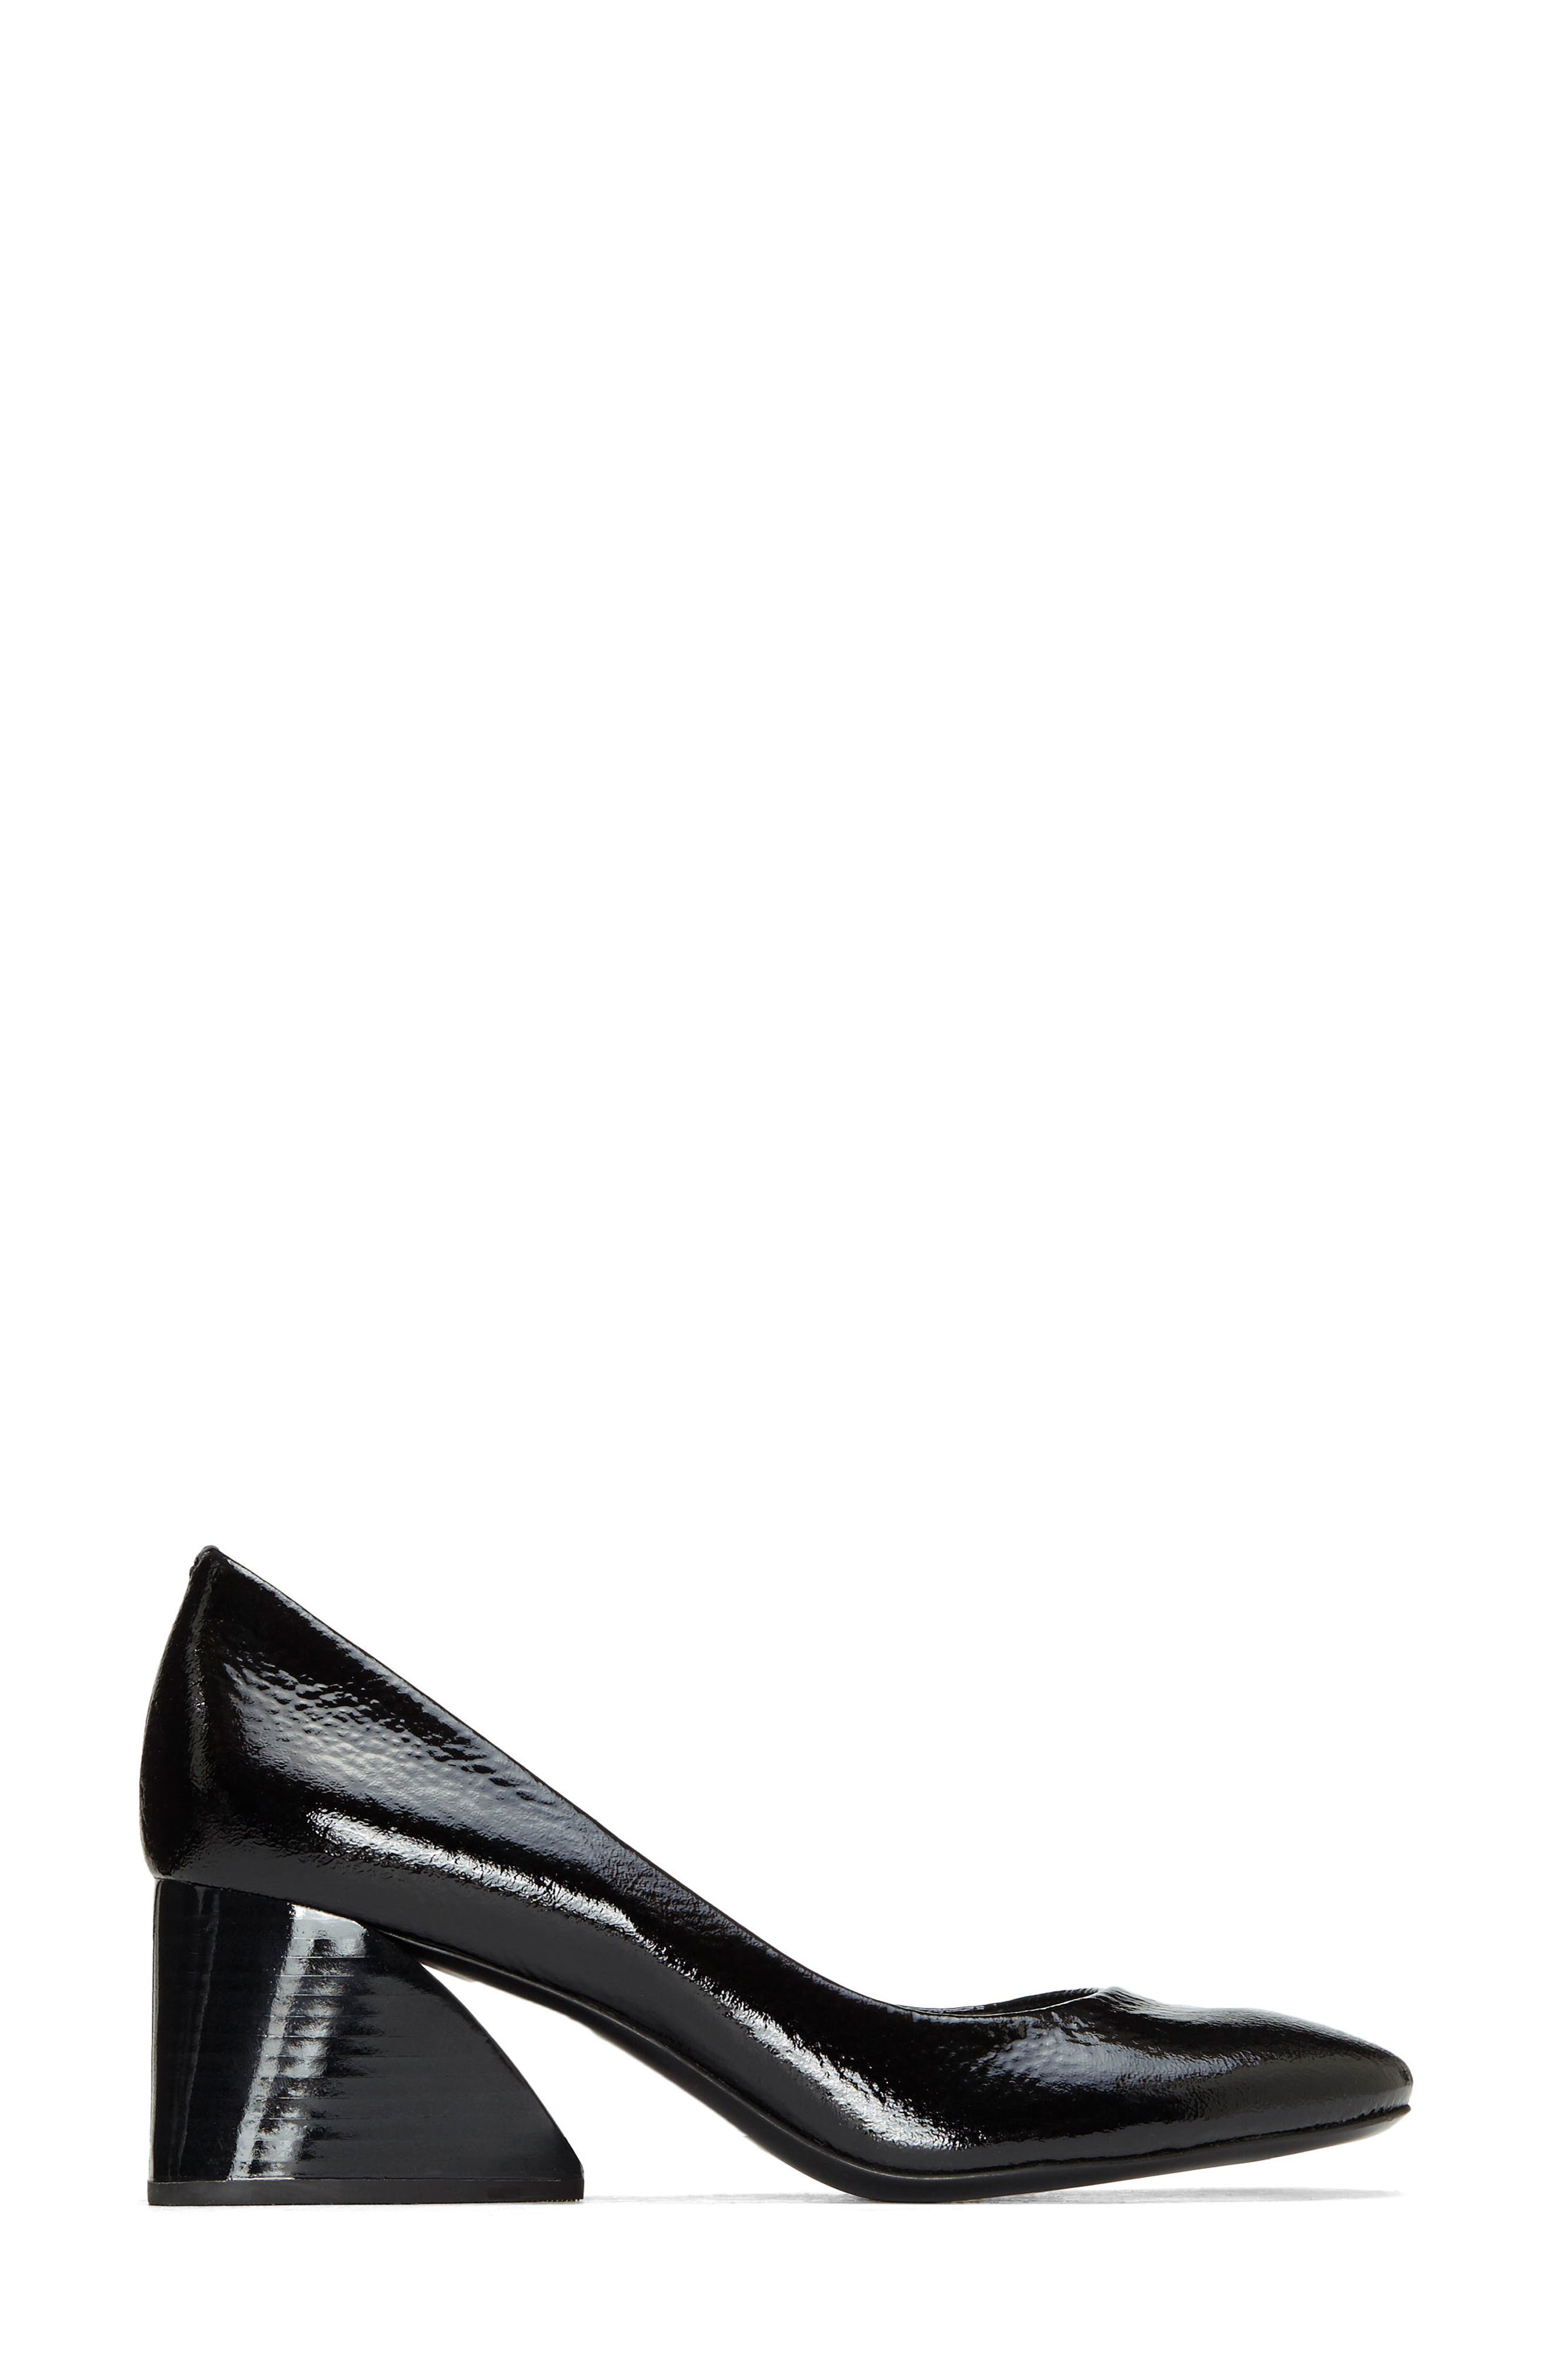 Atia Statement Heel Pump,                             Alternate thumbnail 3, color,                             001